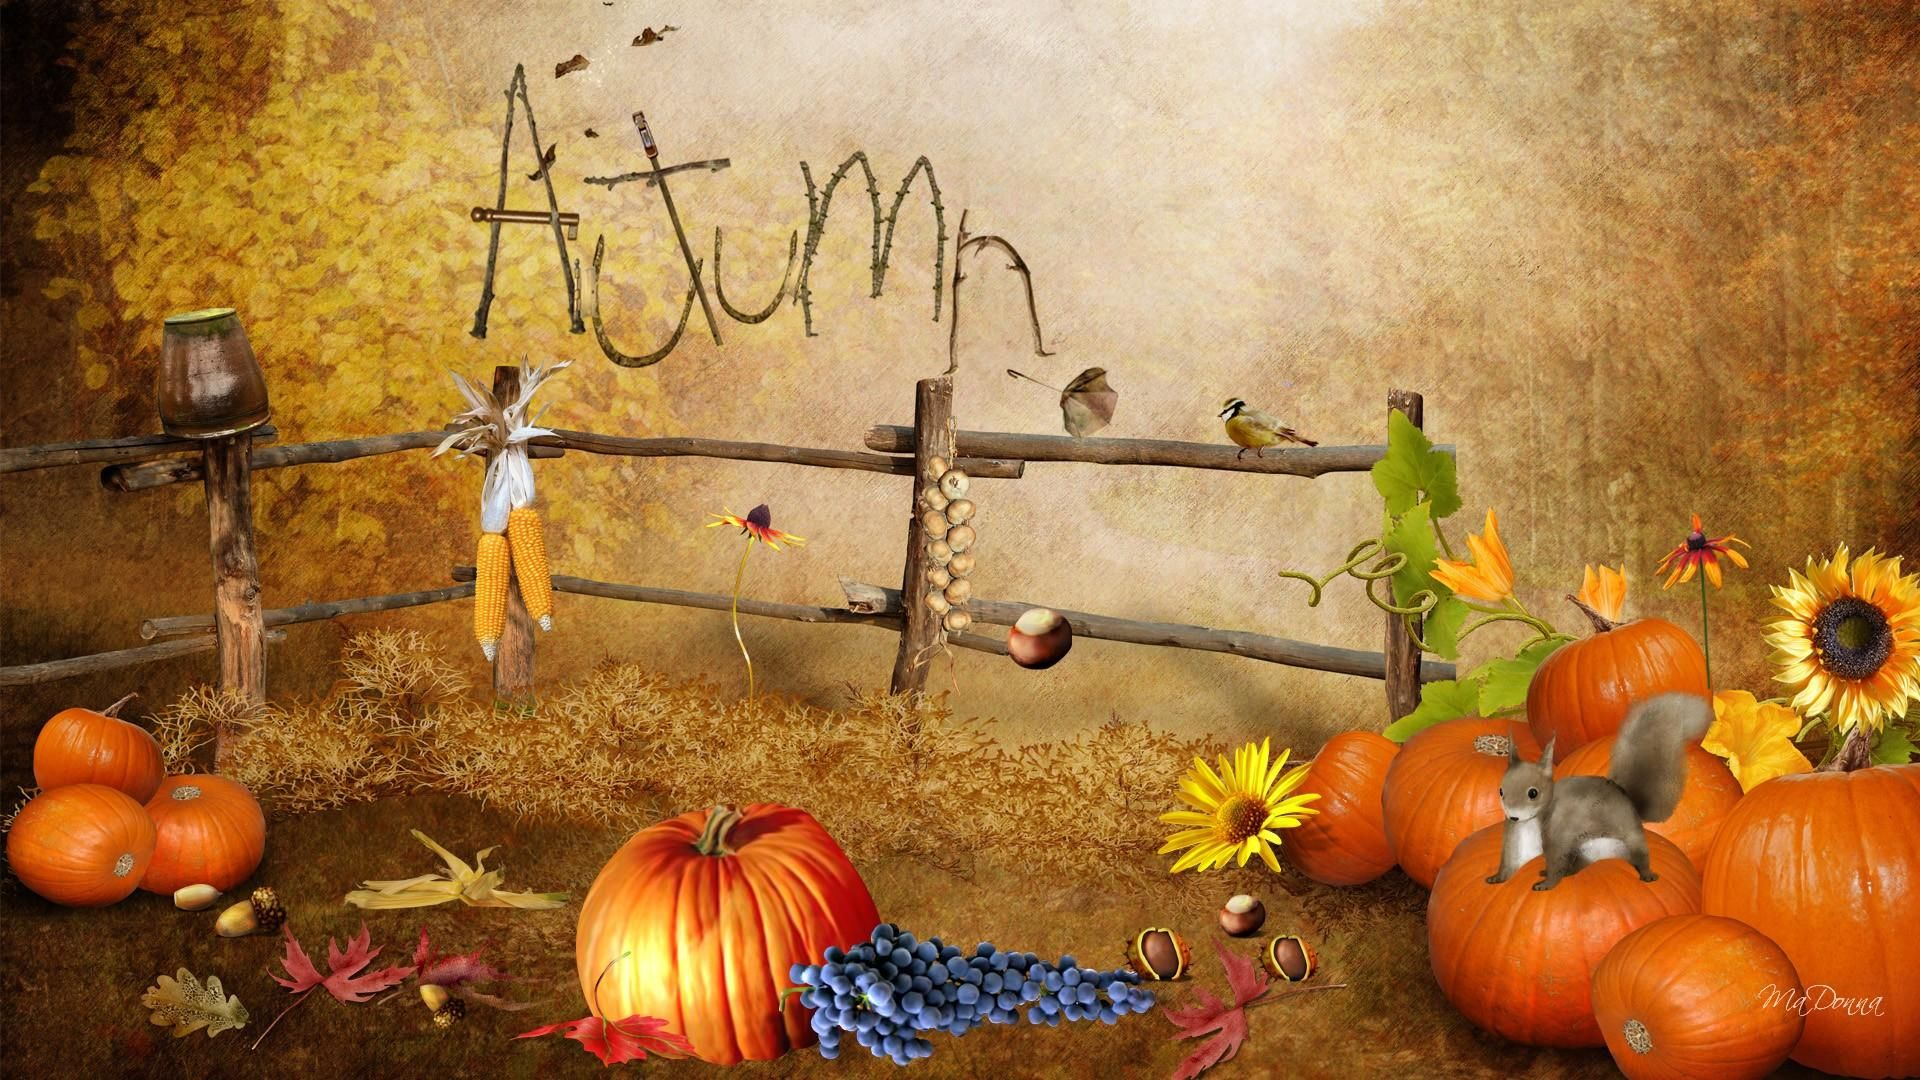 Finest Autumn Happenings Download Wallpaper For Mobile